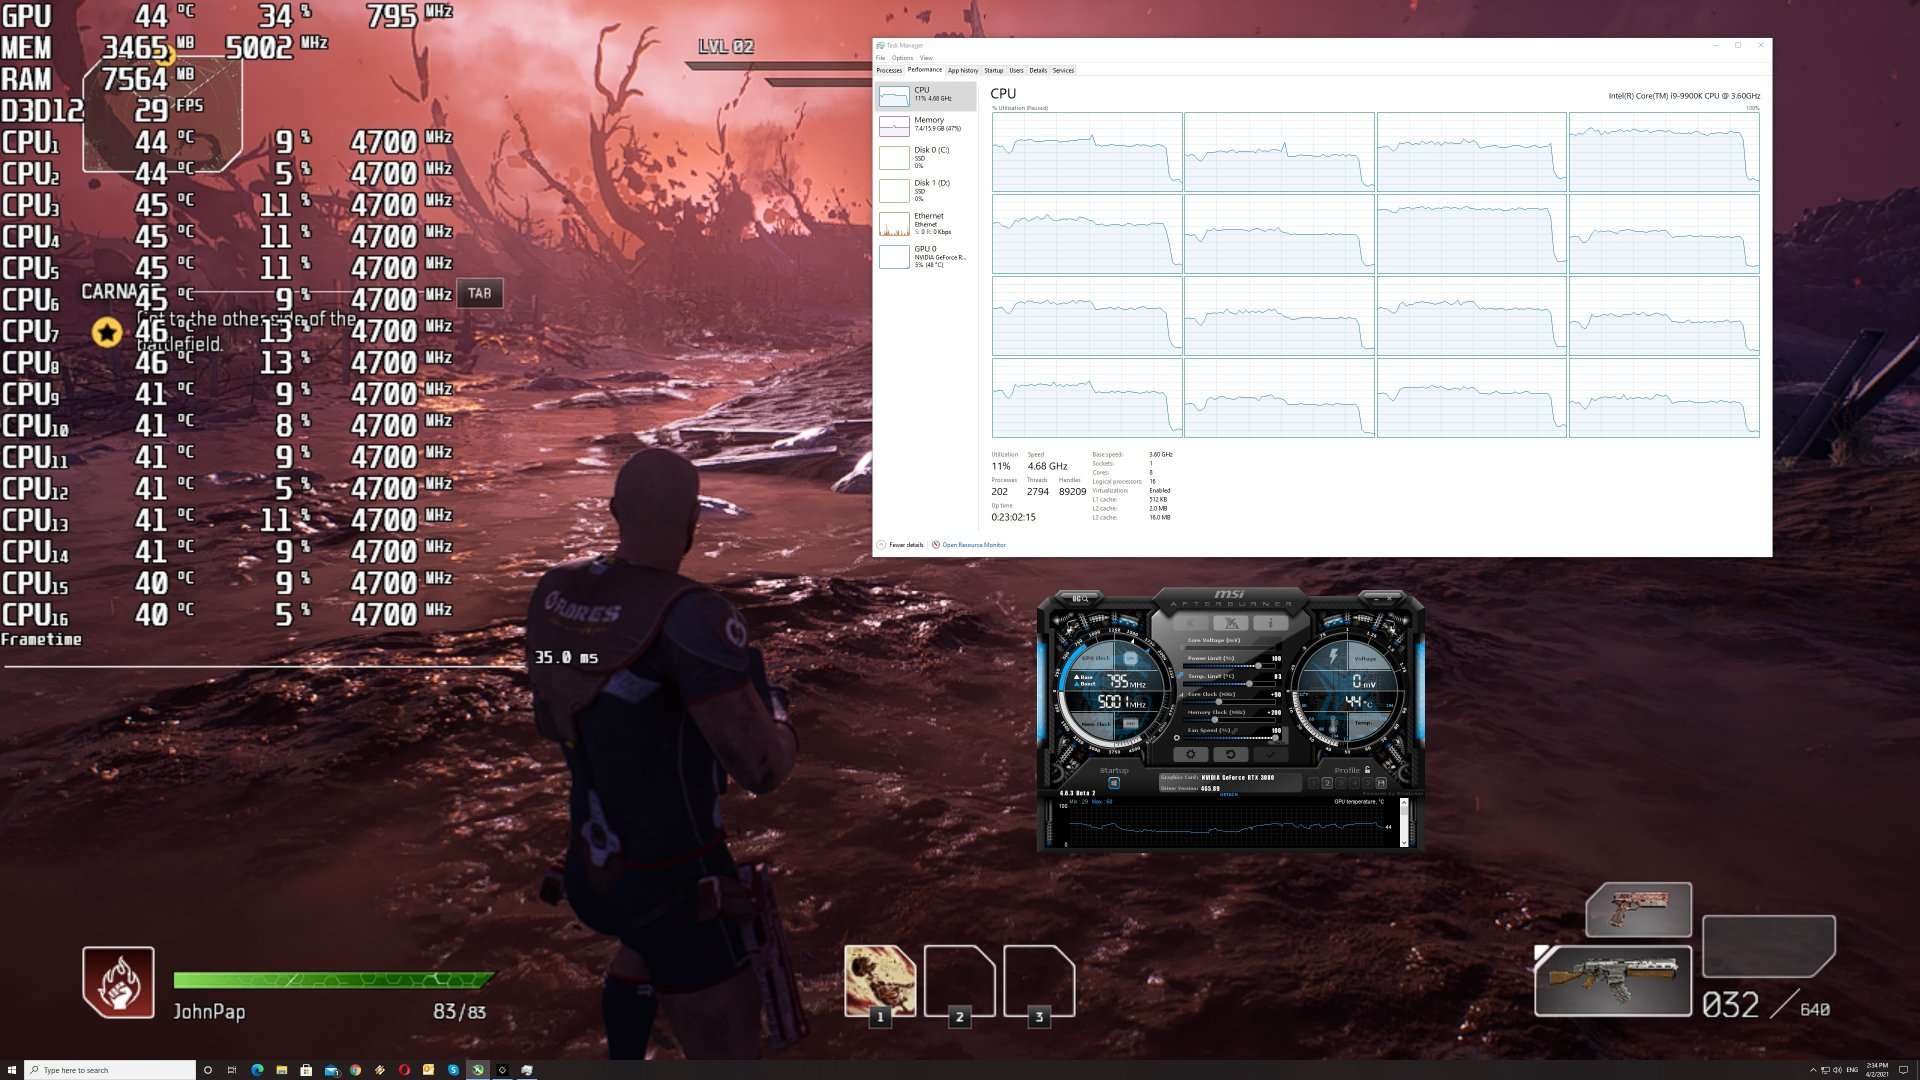 Outriders CPU usage